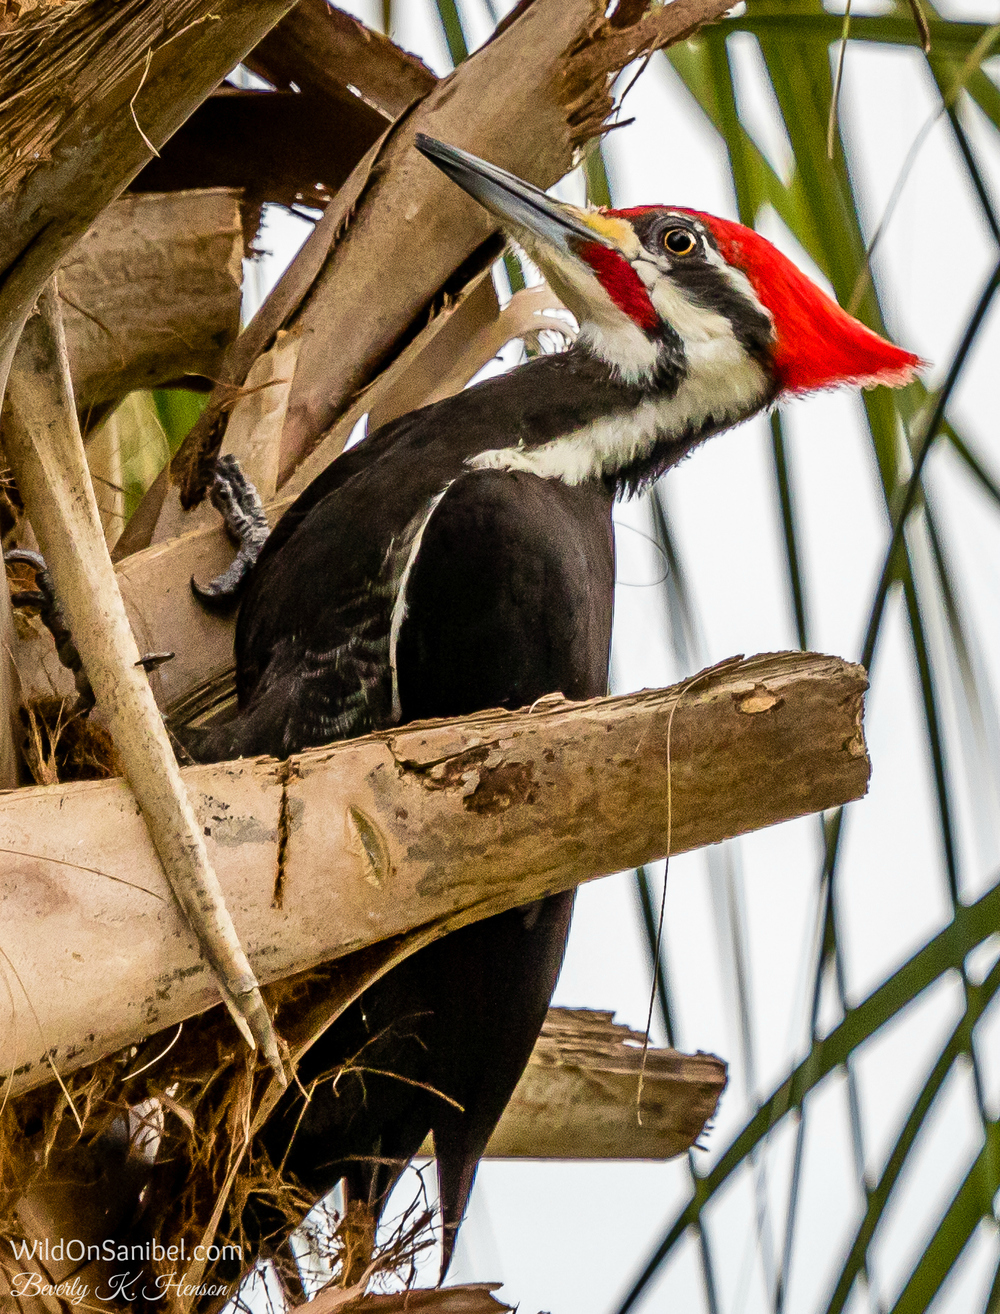 The Pileated Woodpecker (as in Woody Woodpecker) can be shy for pictures. I barely got this one before he took off.